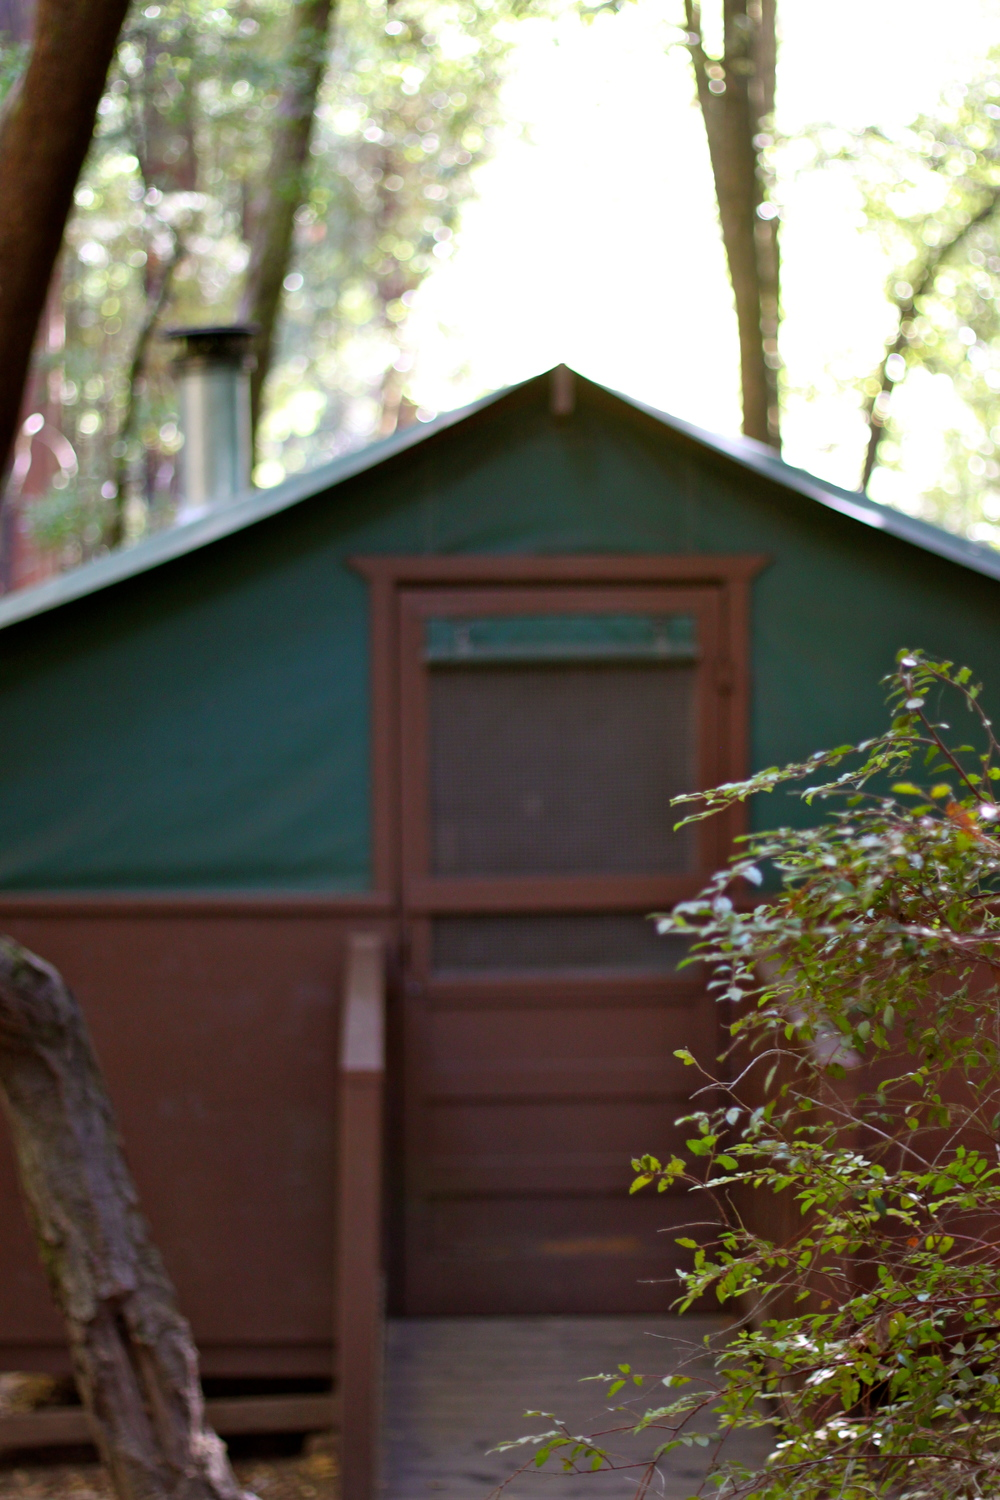 This past weekend we joined 4 other families for a c&ing adventure in the Big Basin Redwoods State Park. Staying in the parku0027s tent cabins made our late ... & Scenes From Big Basin State Park u2014 COCOON HOME